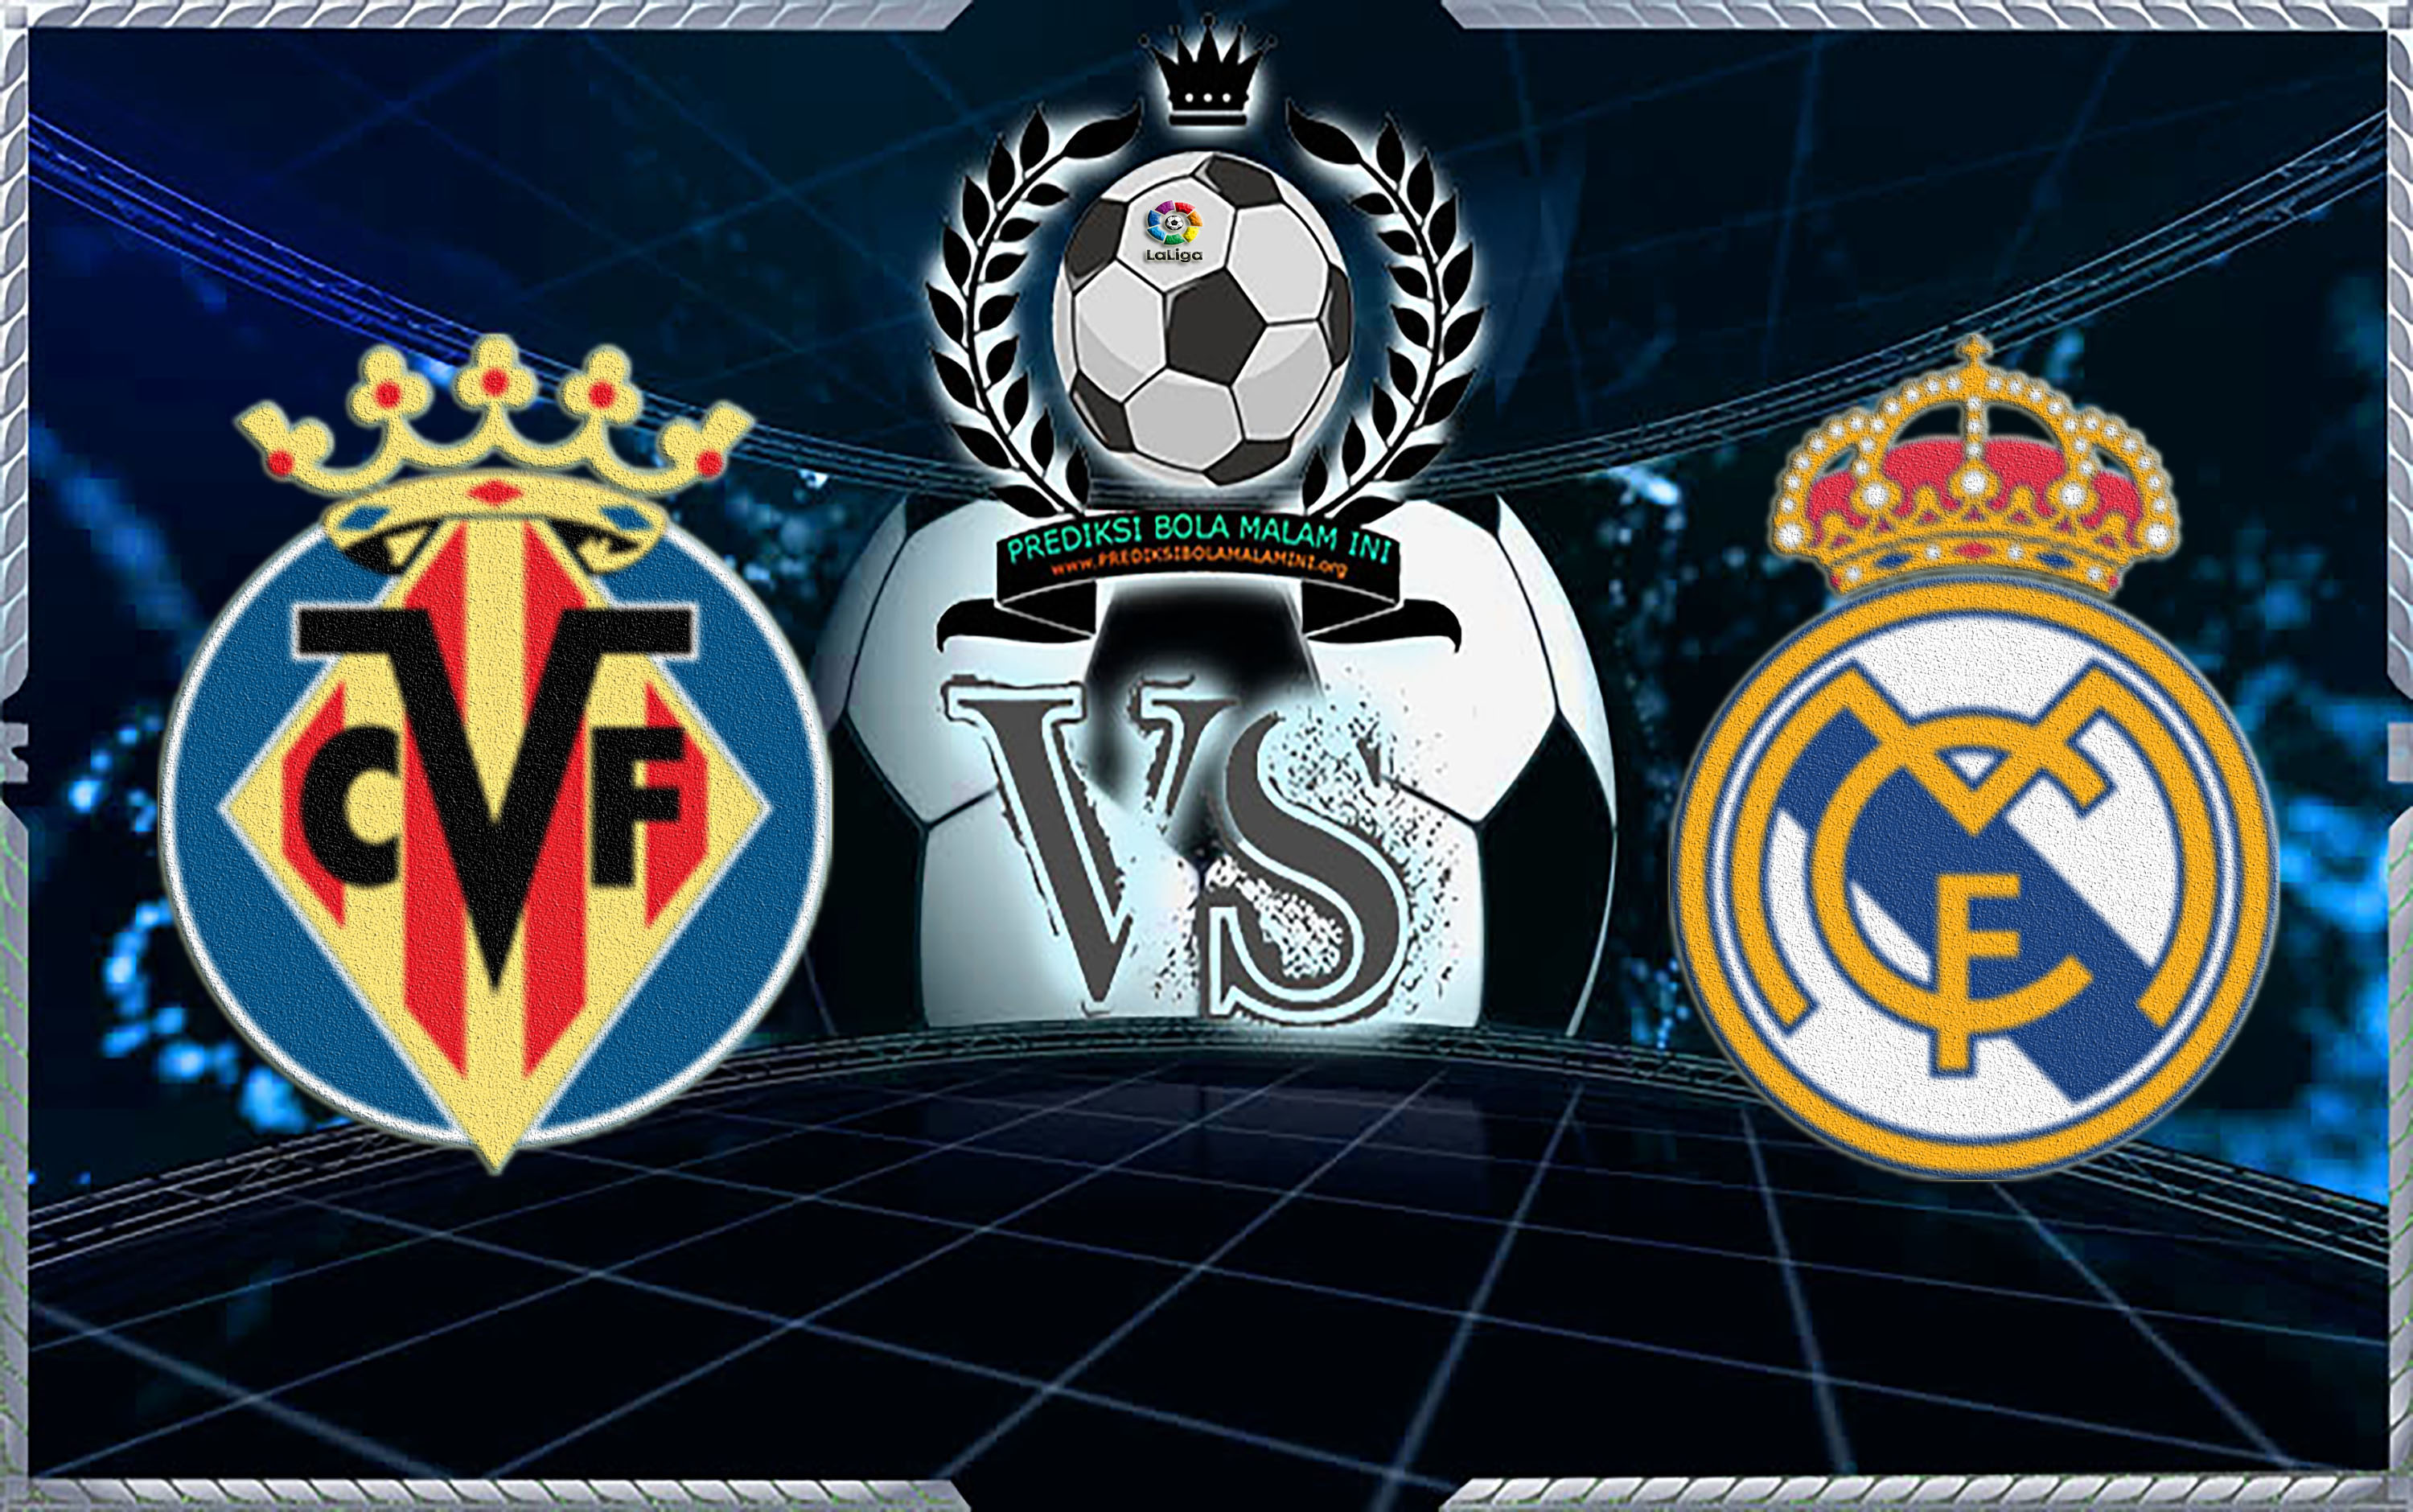 Villareal Vs Real Madrid &quot;width =&quot; 640 &quot;height =&quot; 401 &quot;/&gt; </p> <p> <span style=